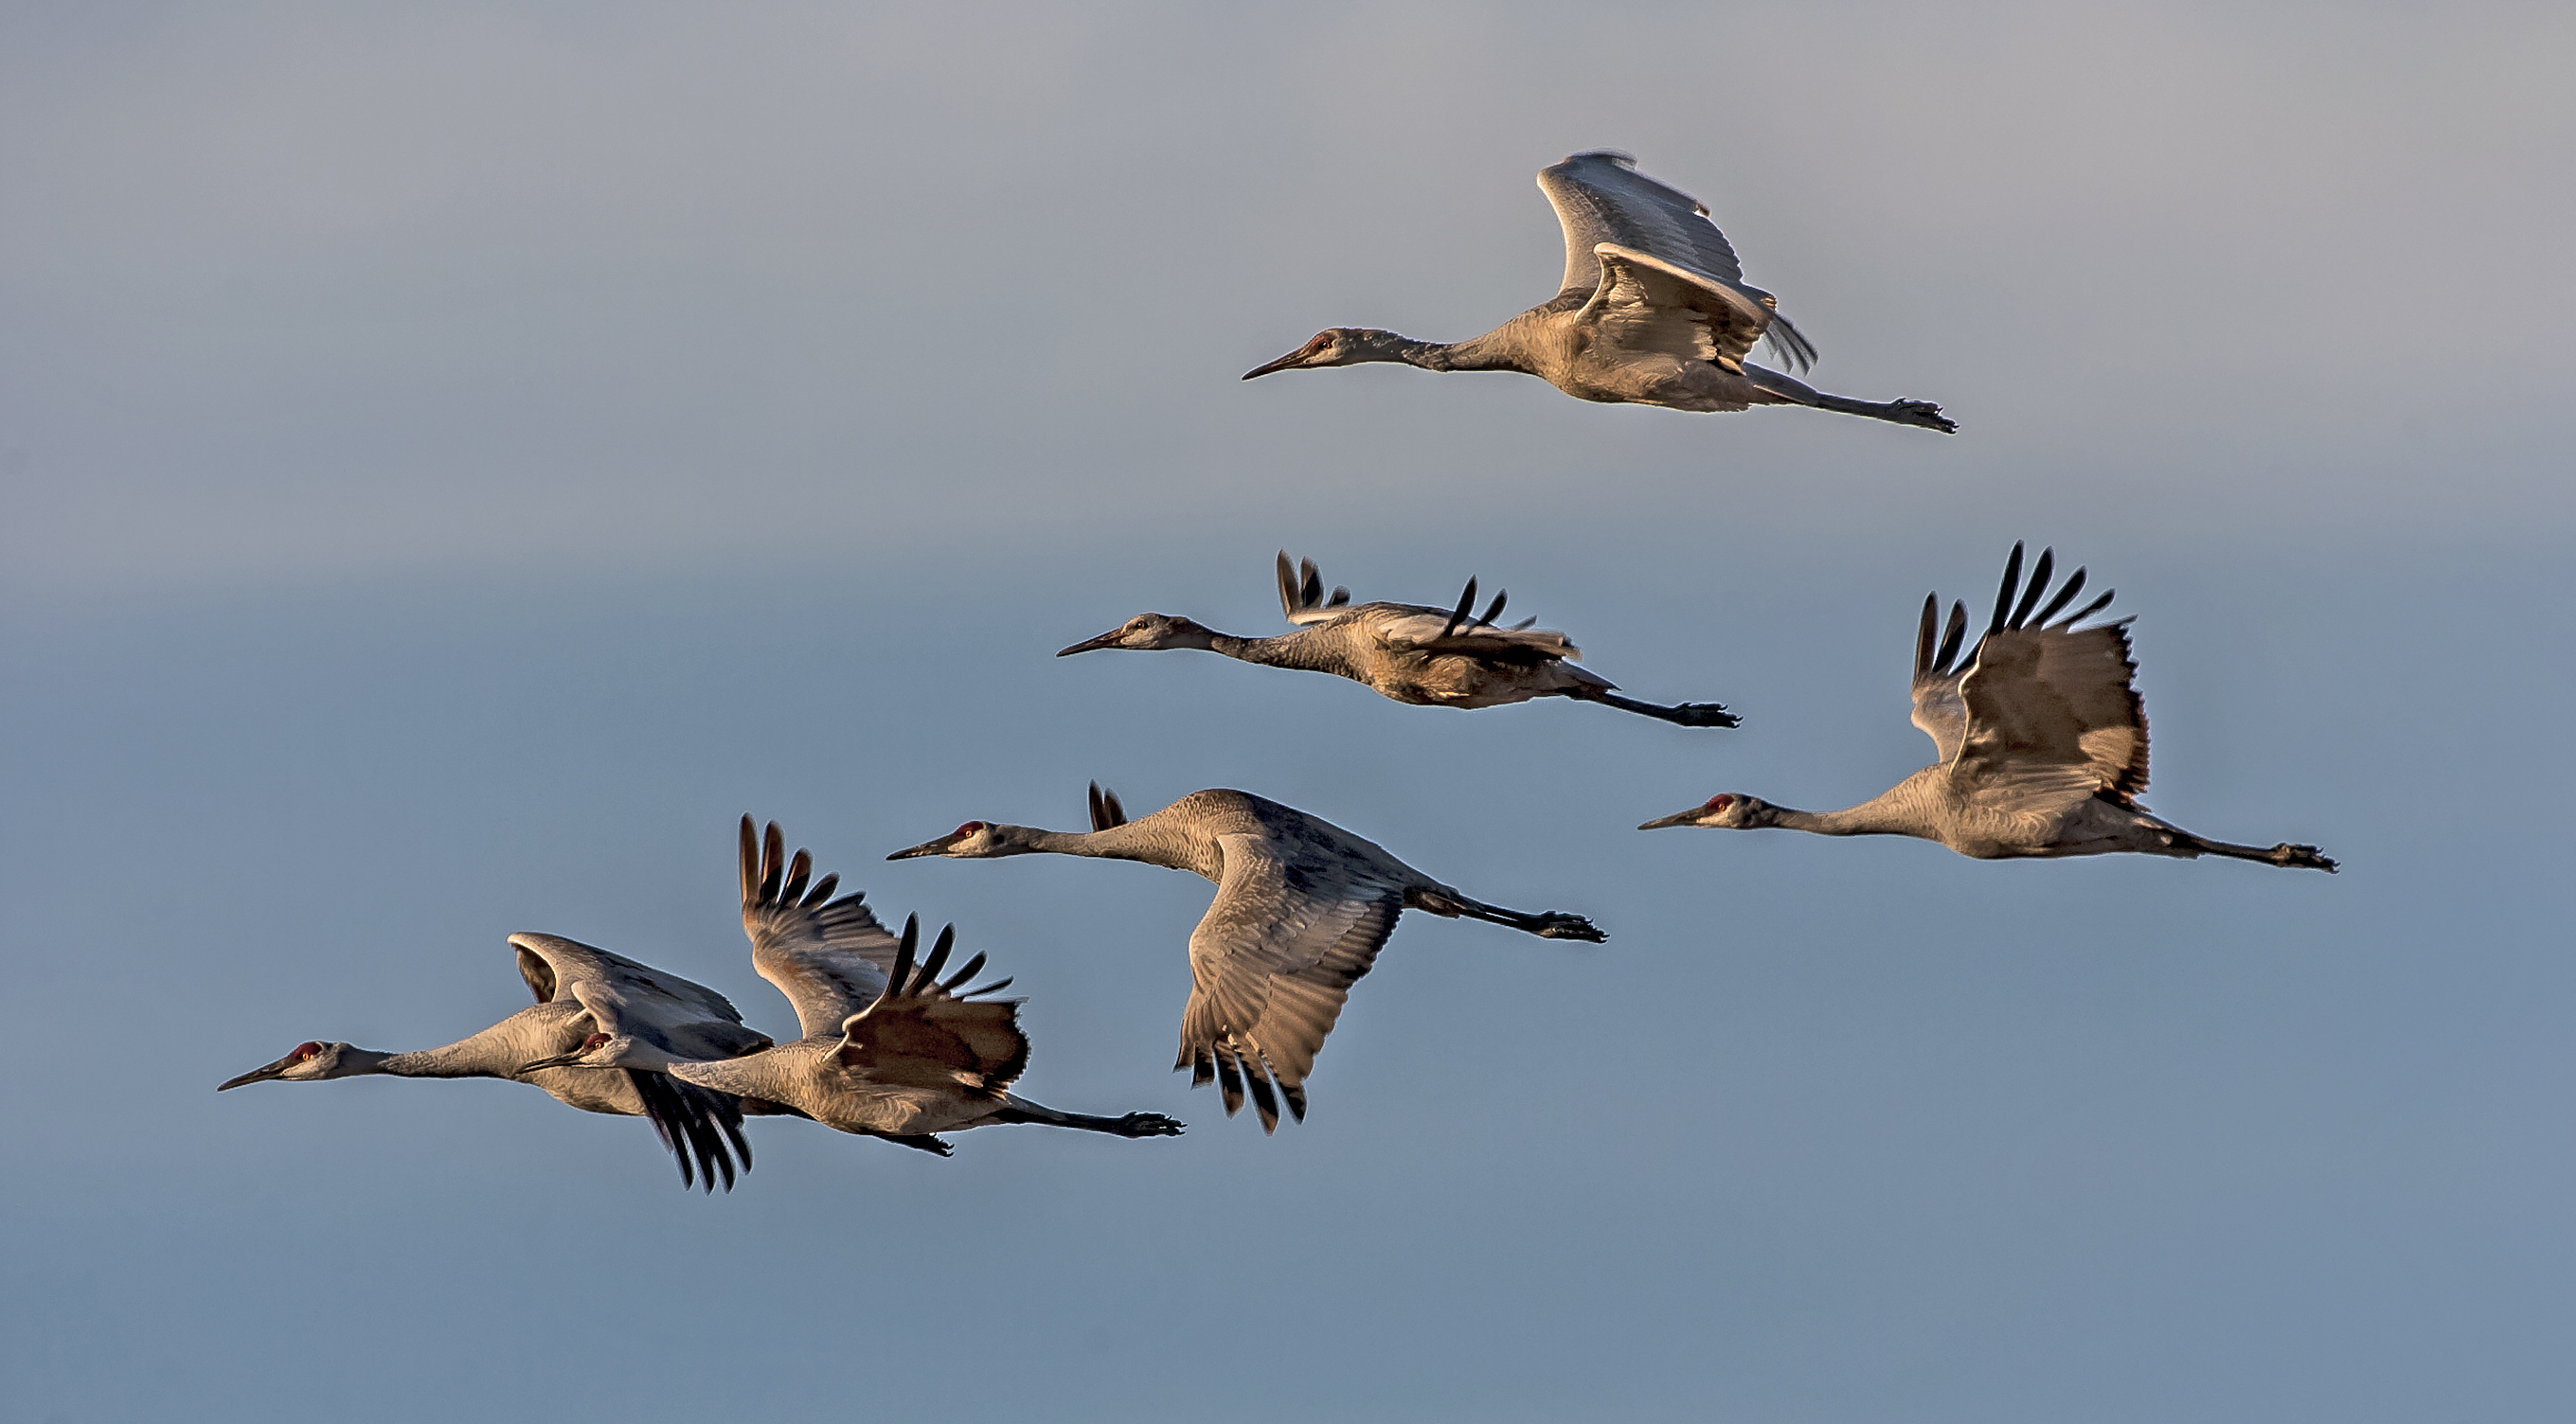 Great migrations can be magical, ancient, natural occurrences embedded into our ordinary lives, especially those of Sandhill Cranes.